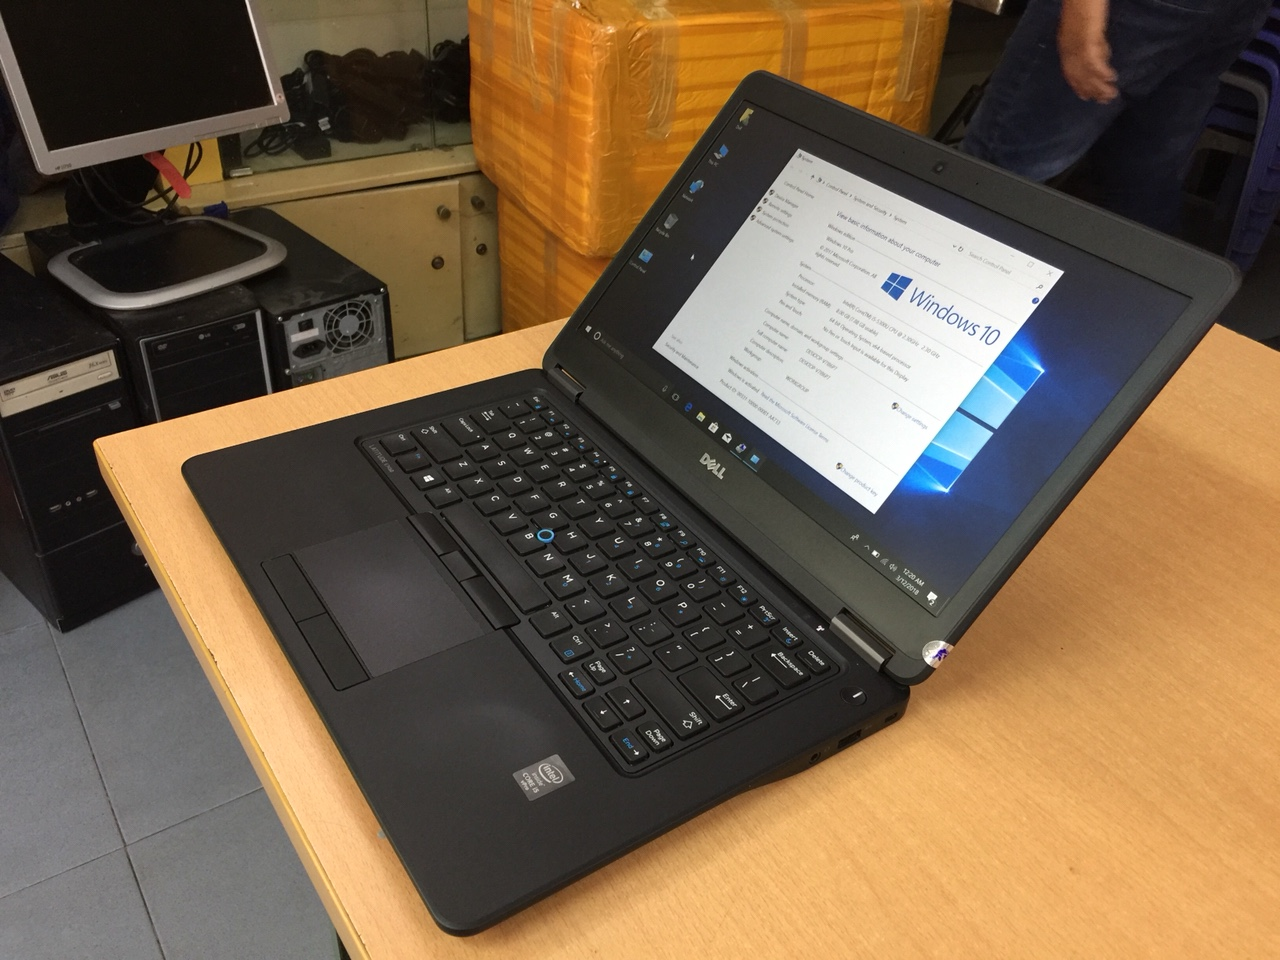 DELL LATITUDE E7450 I7 5600U 8GB 240GB 14